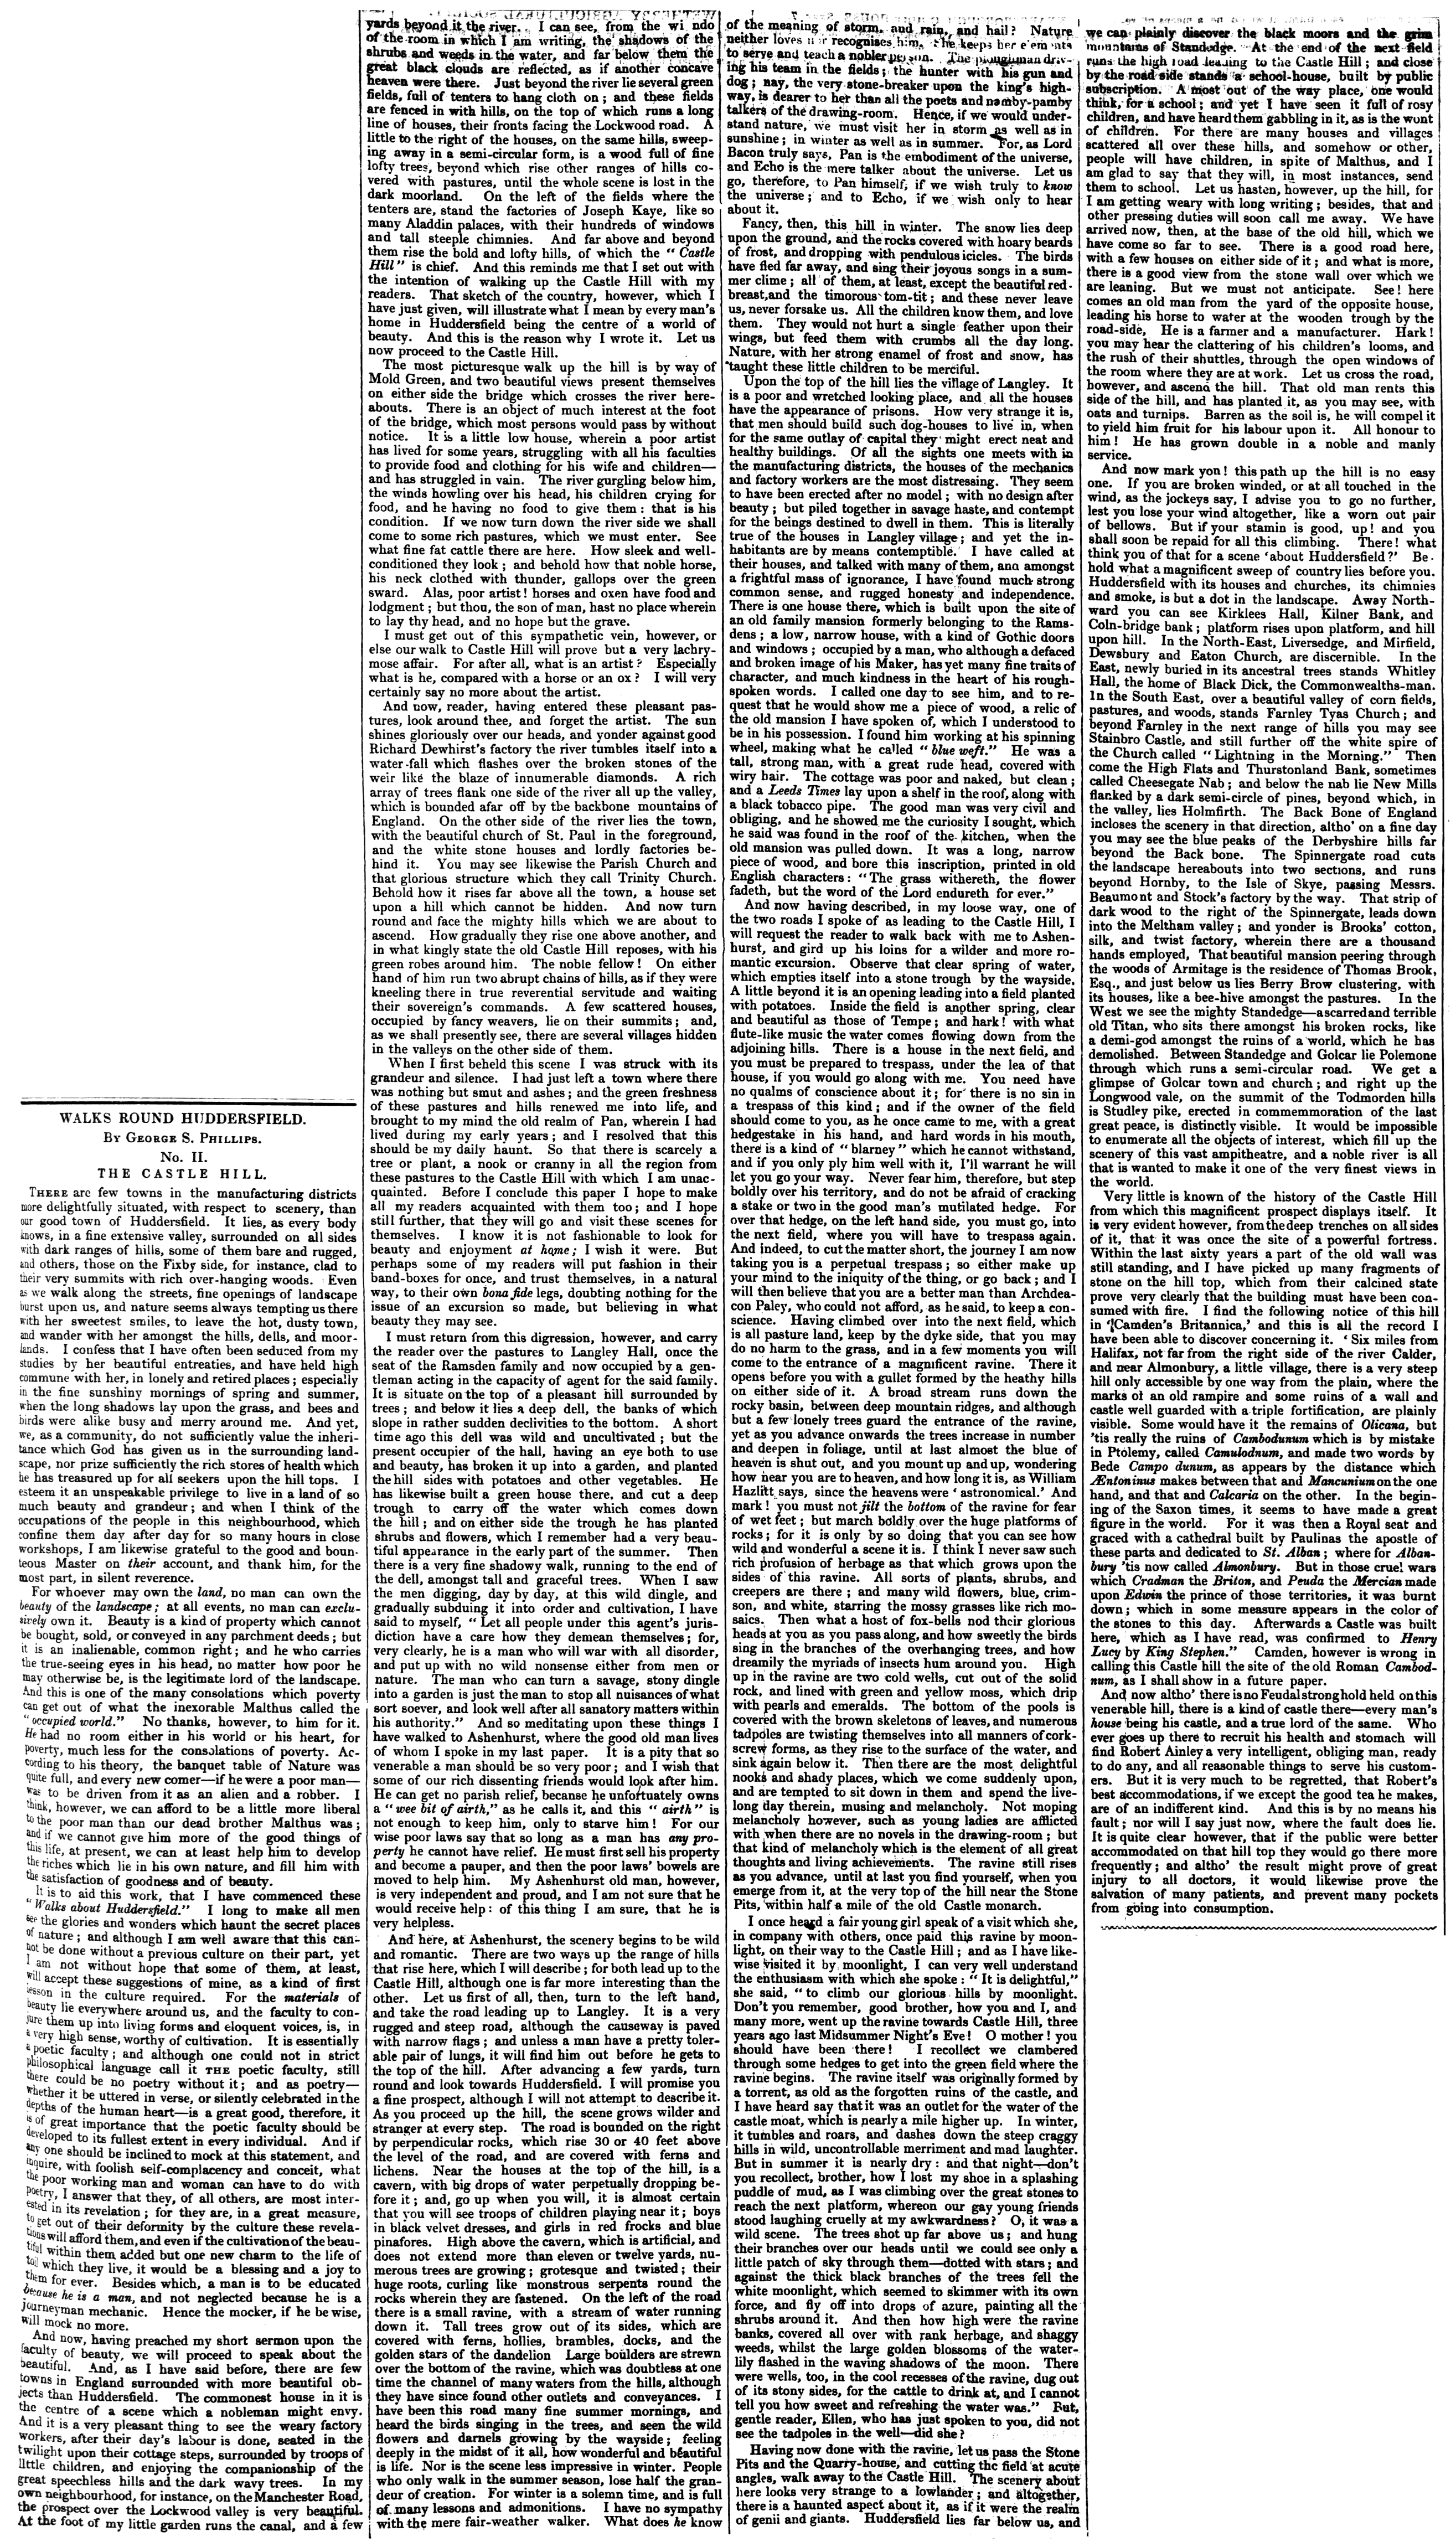 Bradford and Wakefield Observer 16 September 1847.png